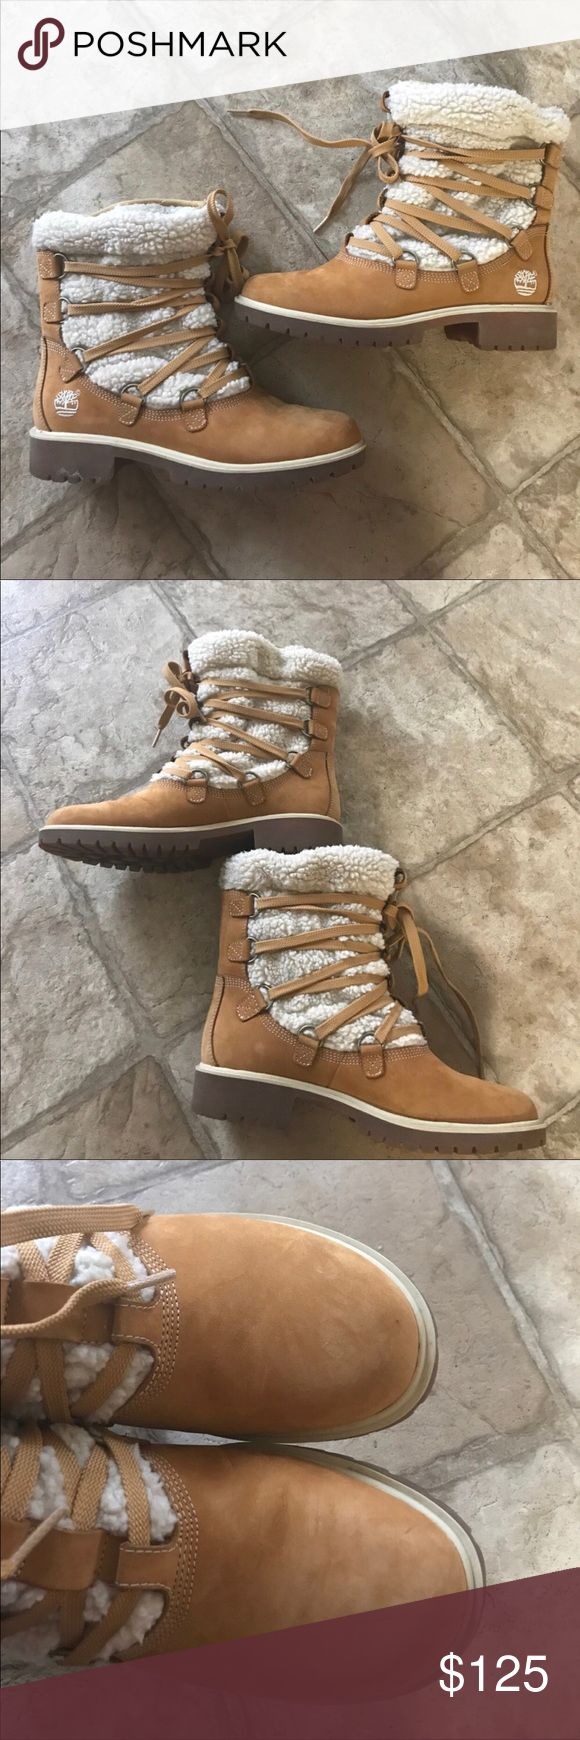 Timberland Women's Lined Winter Boots Super cute Timberland boots Size 8  Lined Small scuffs on fronts. See photos. Minor wear. Timberland Shoes Winter & Rain Boots